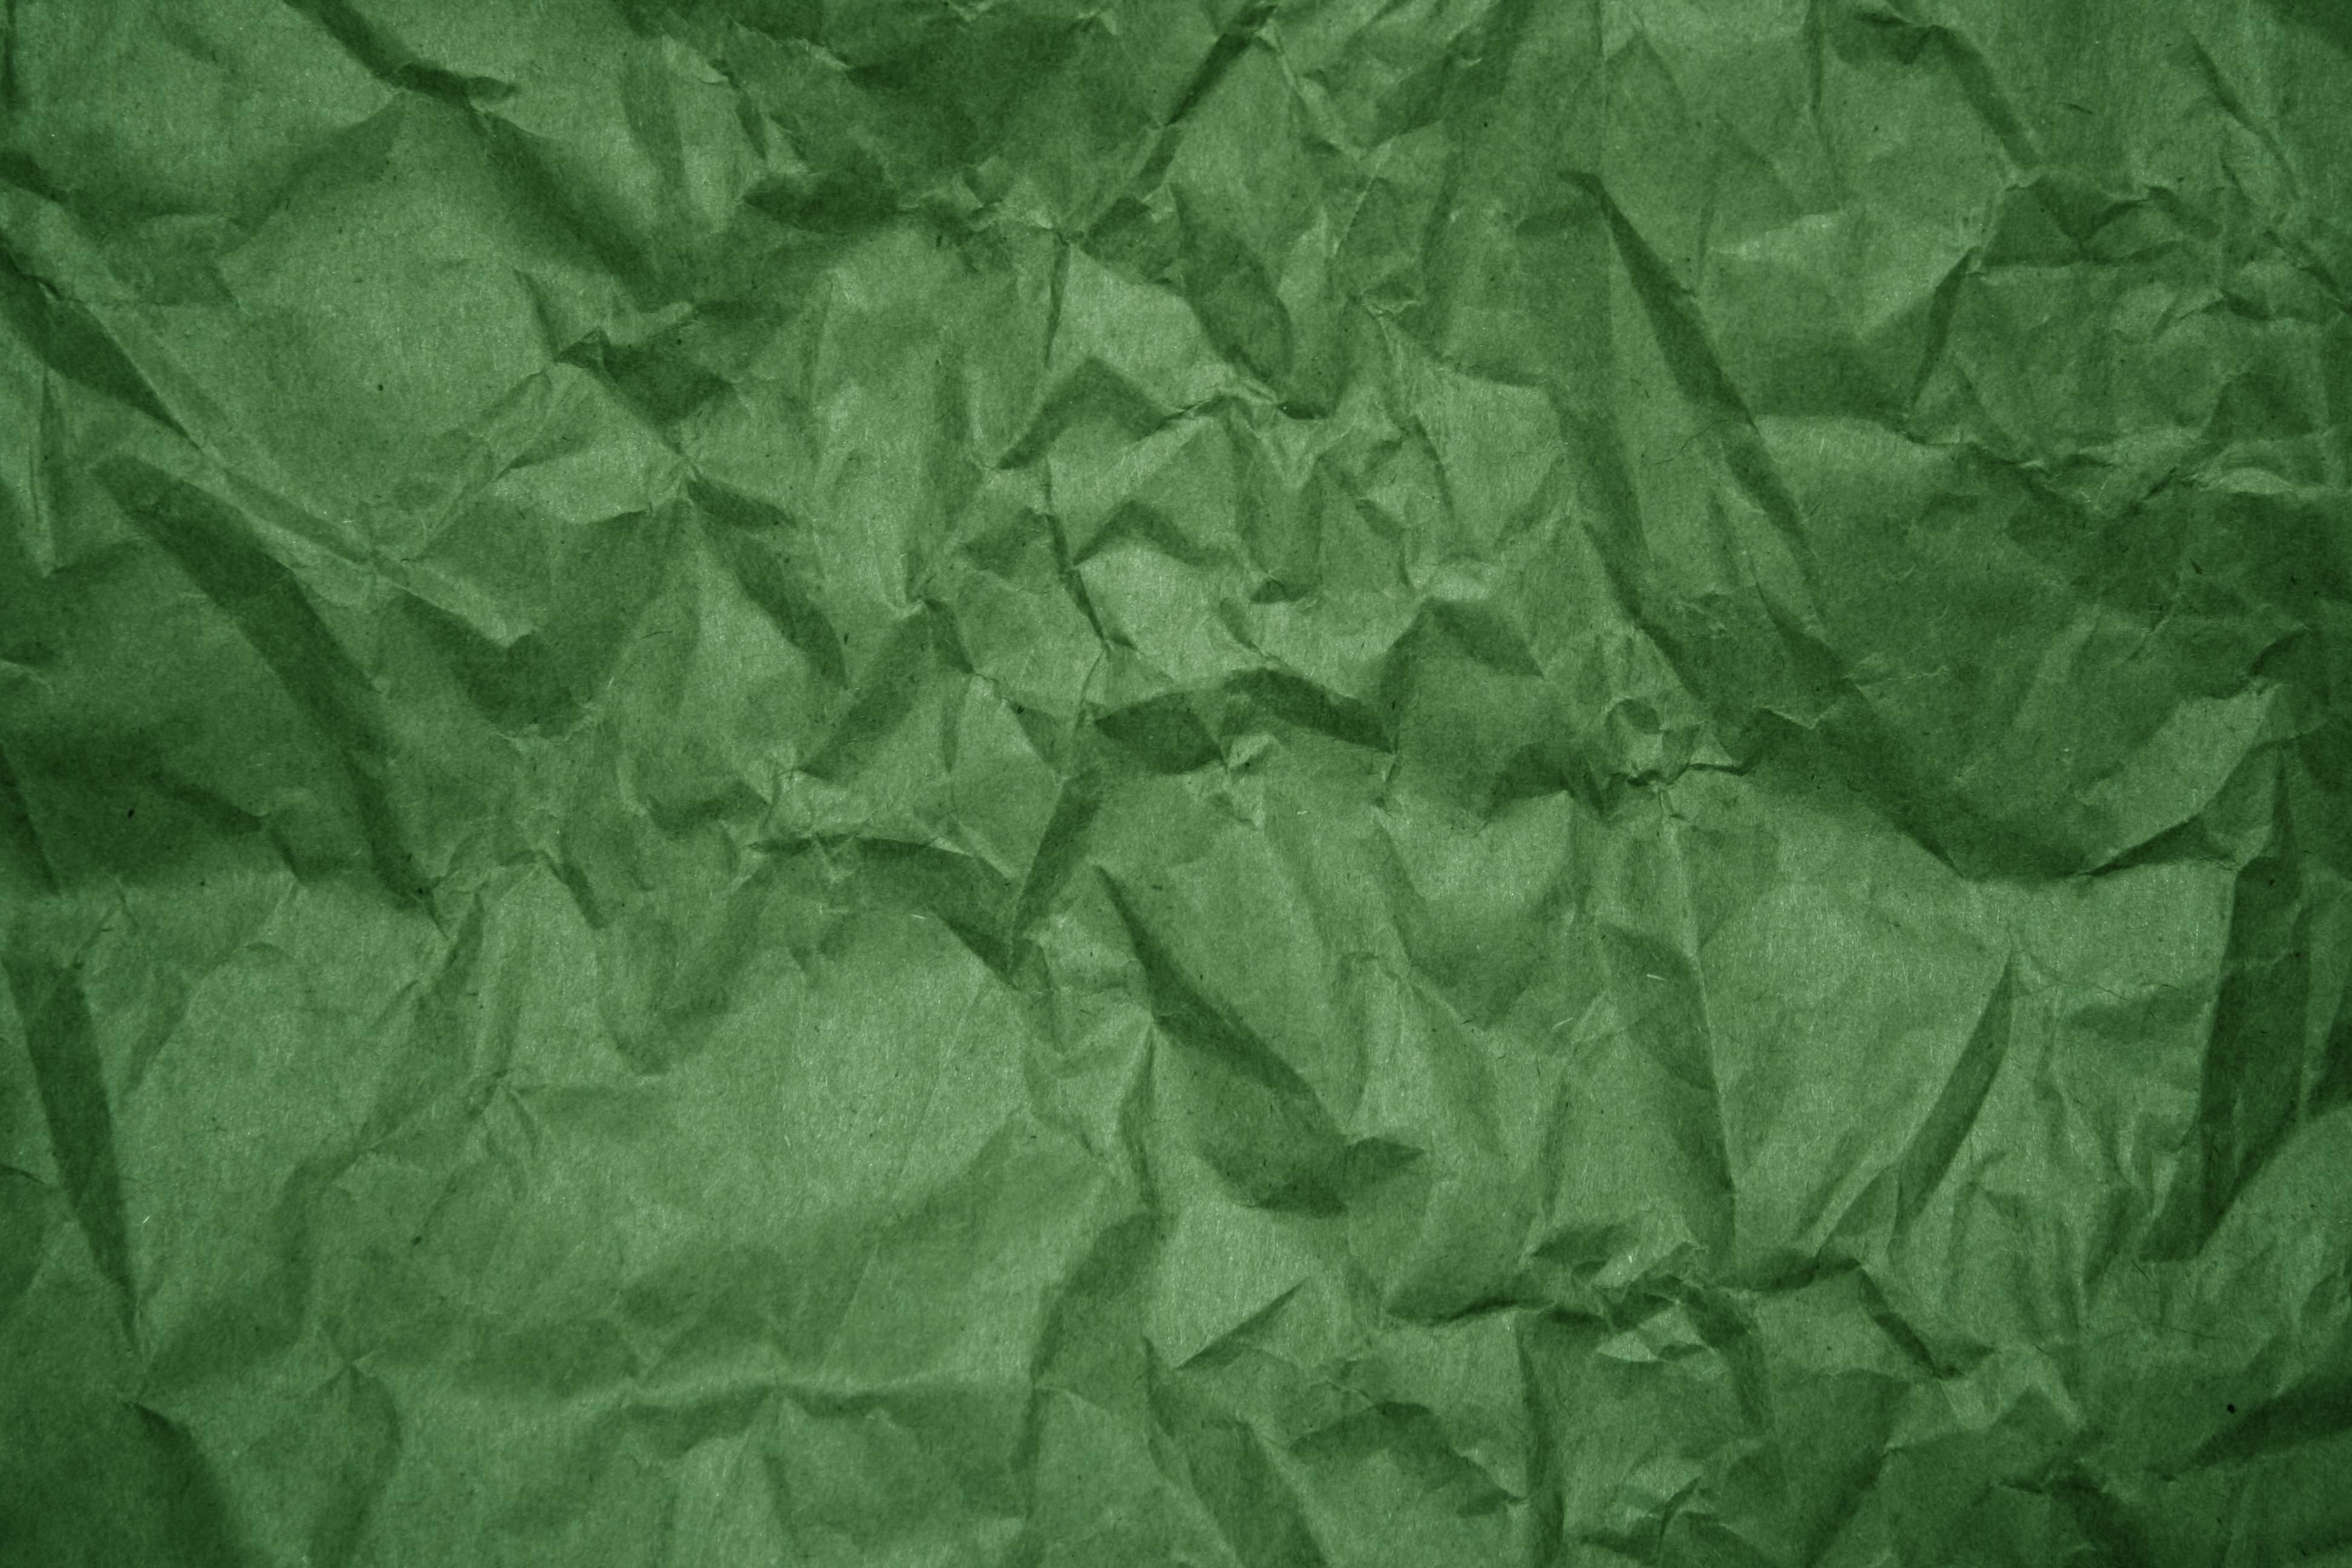 Crumpled Green Paper Texture